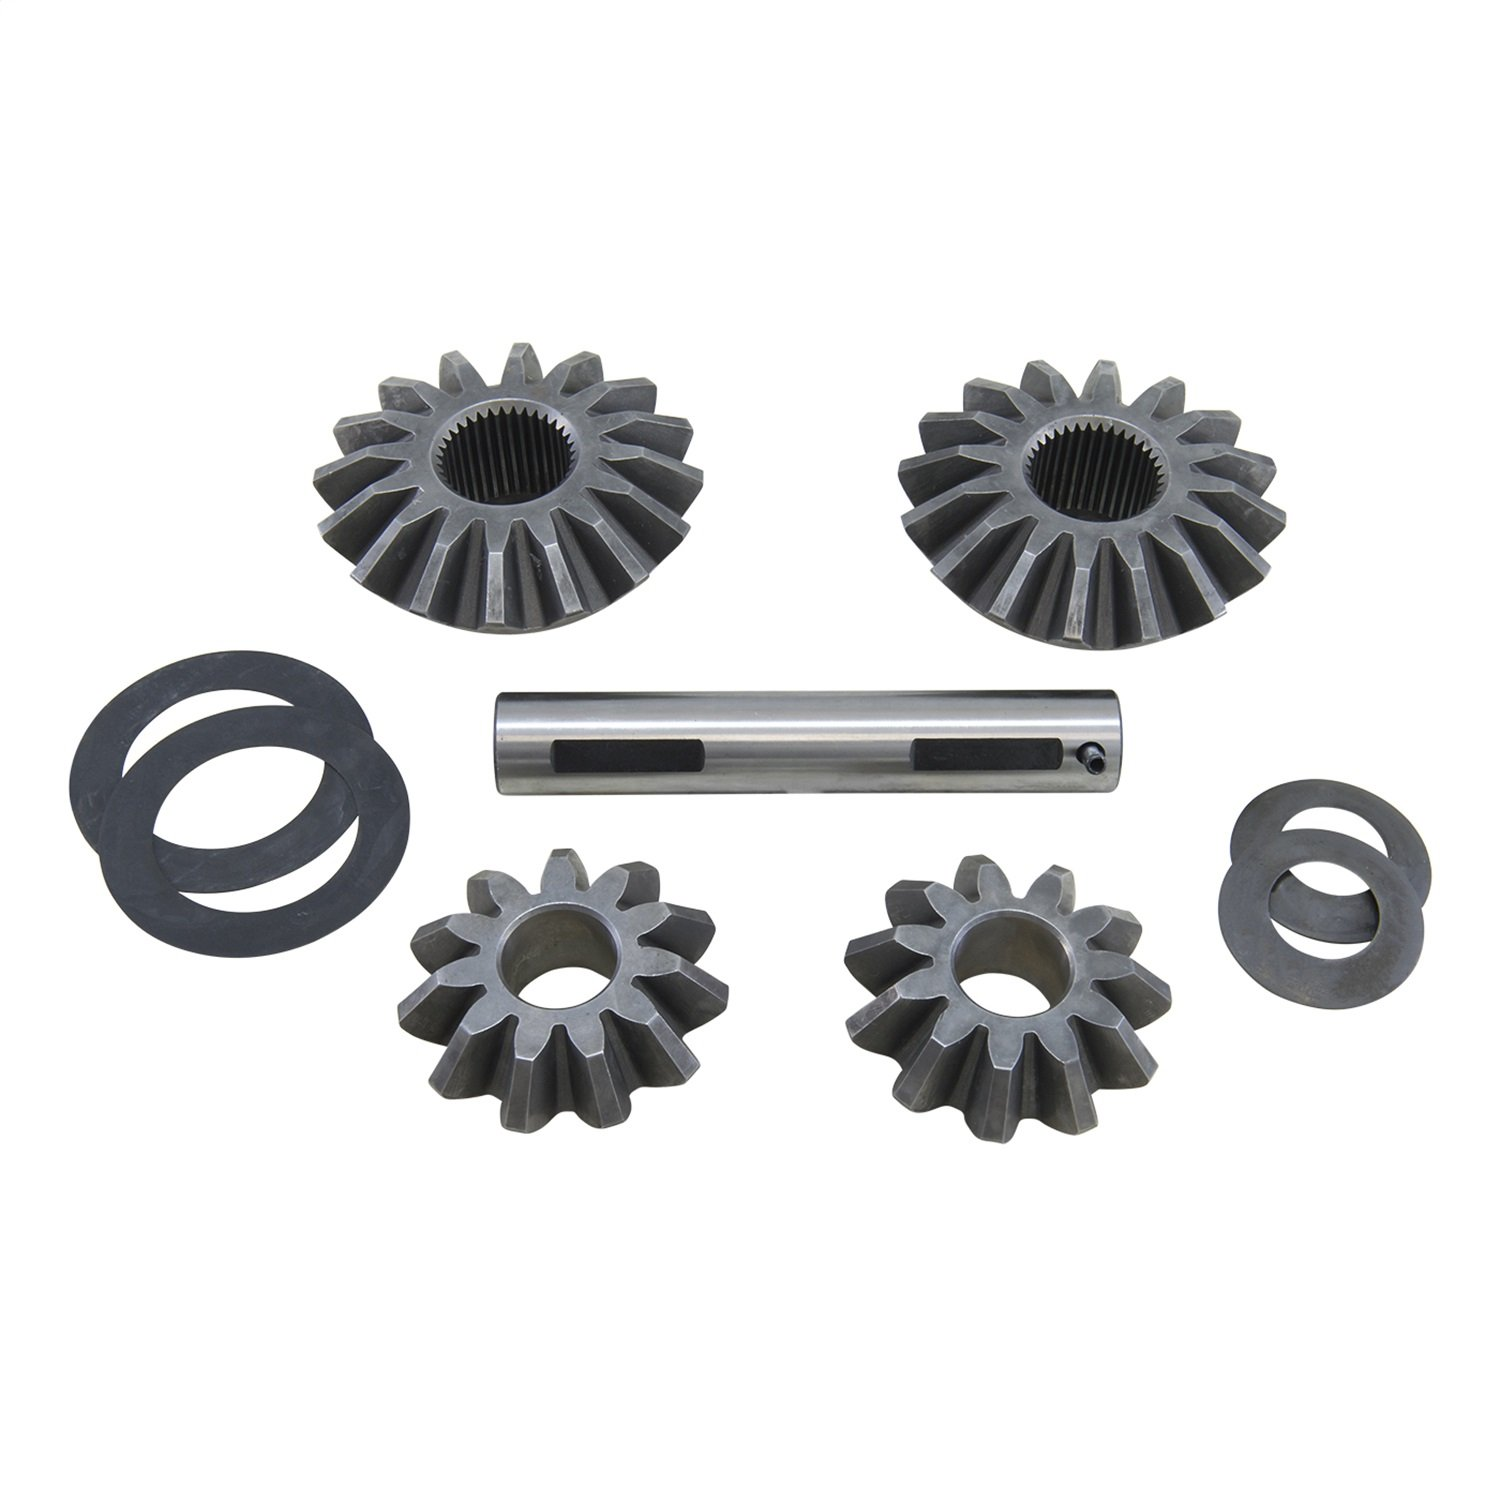 ZIKD60-S-35 Replacement Spider Gear Set for 35-Spline Dana 60 Differential USA Standard Gear